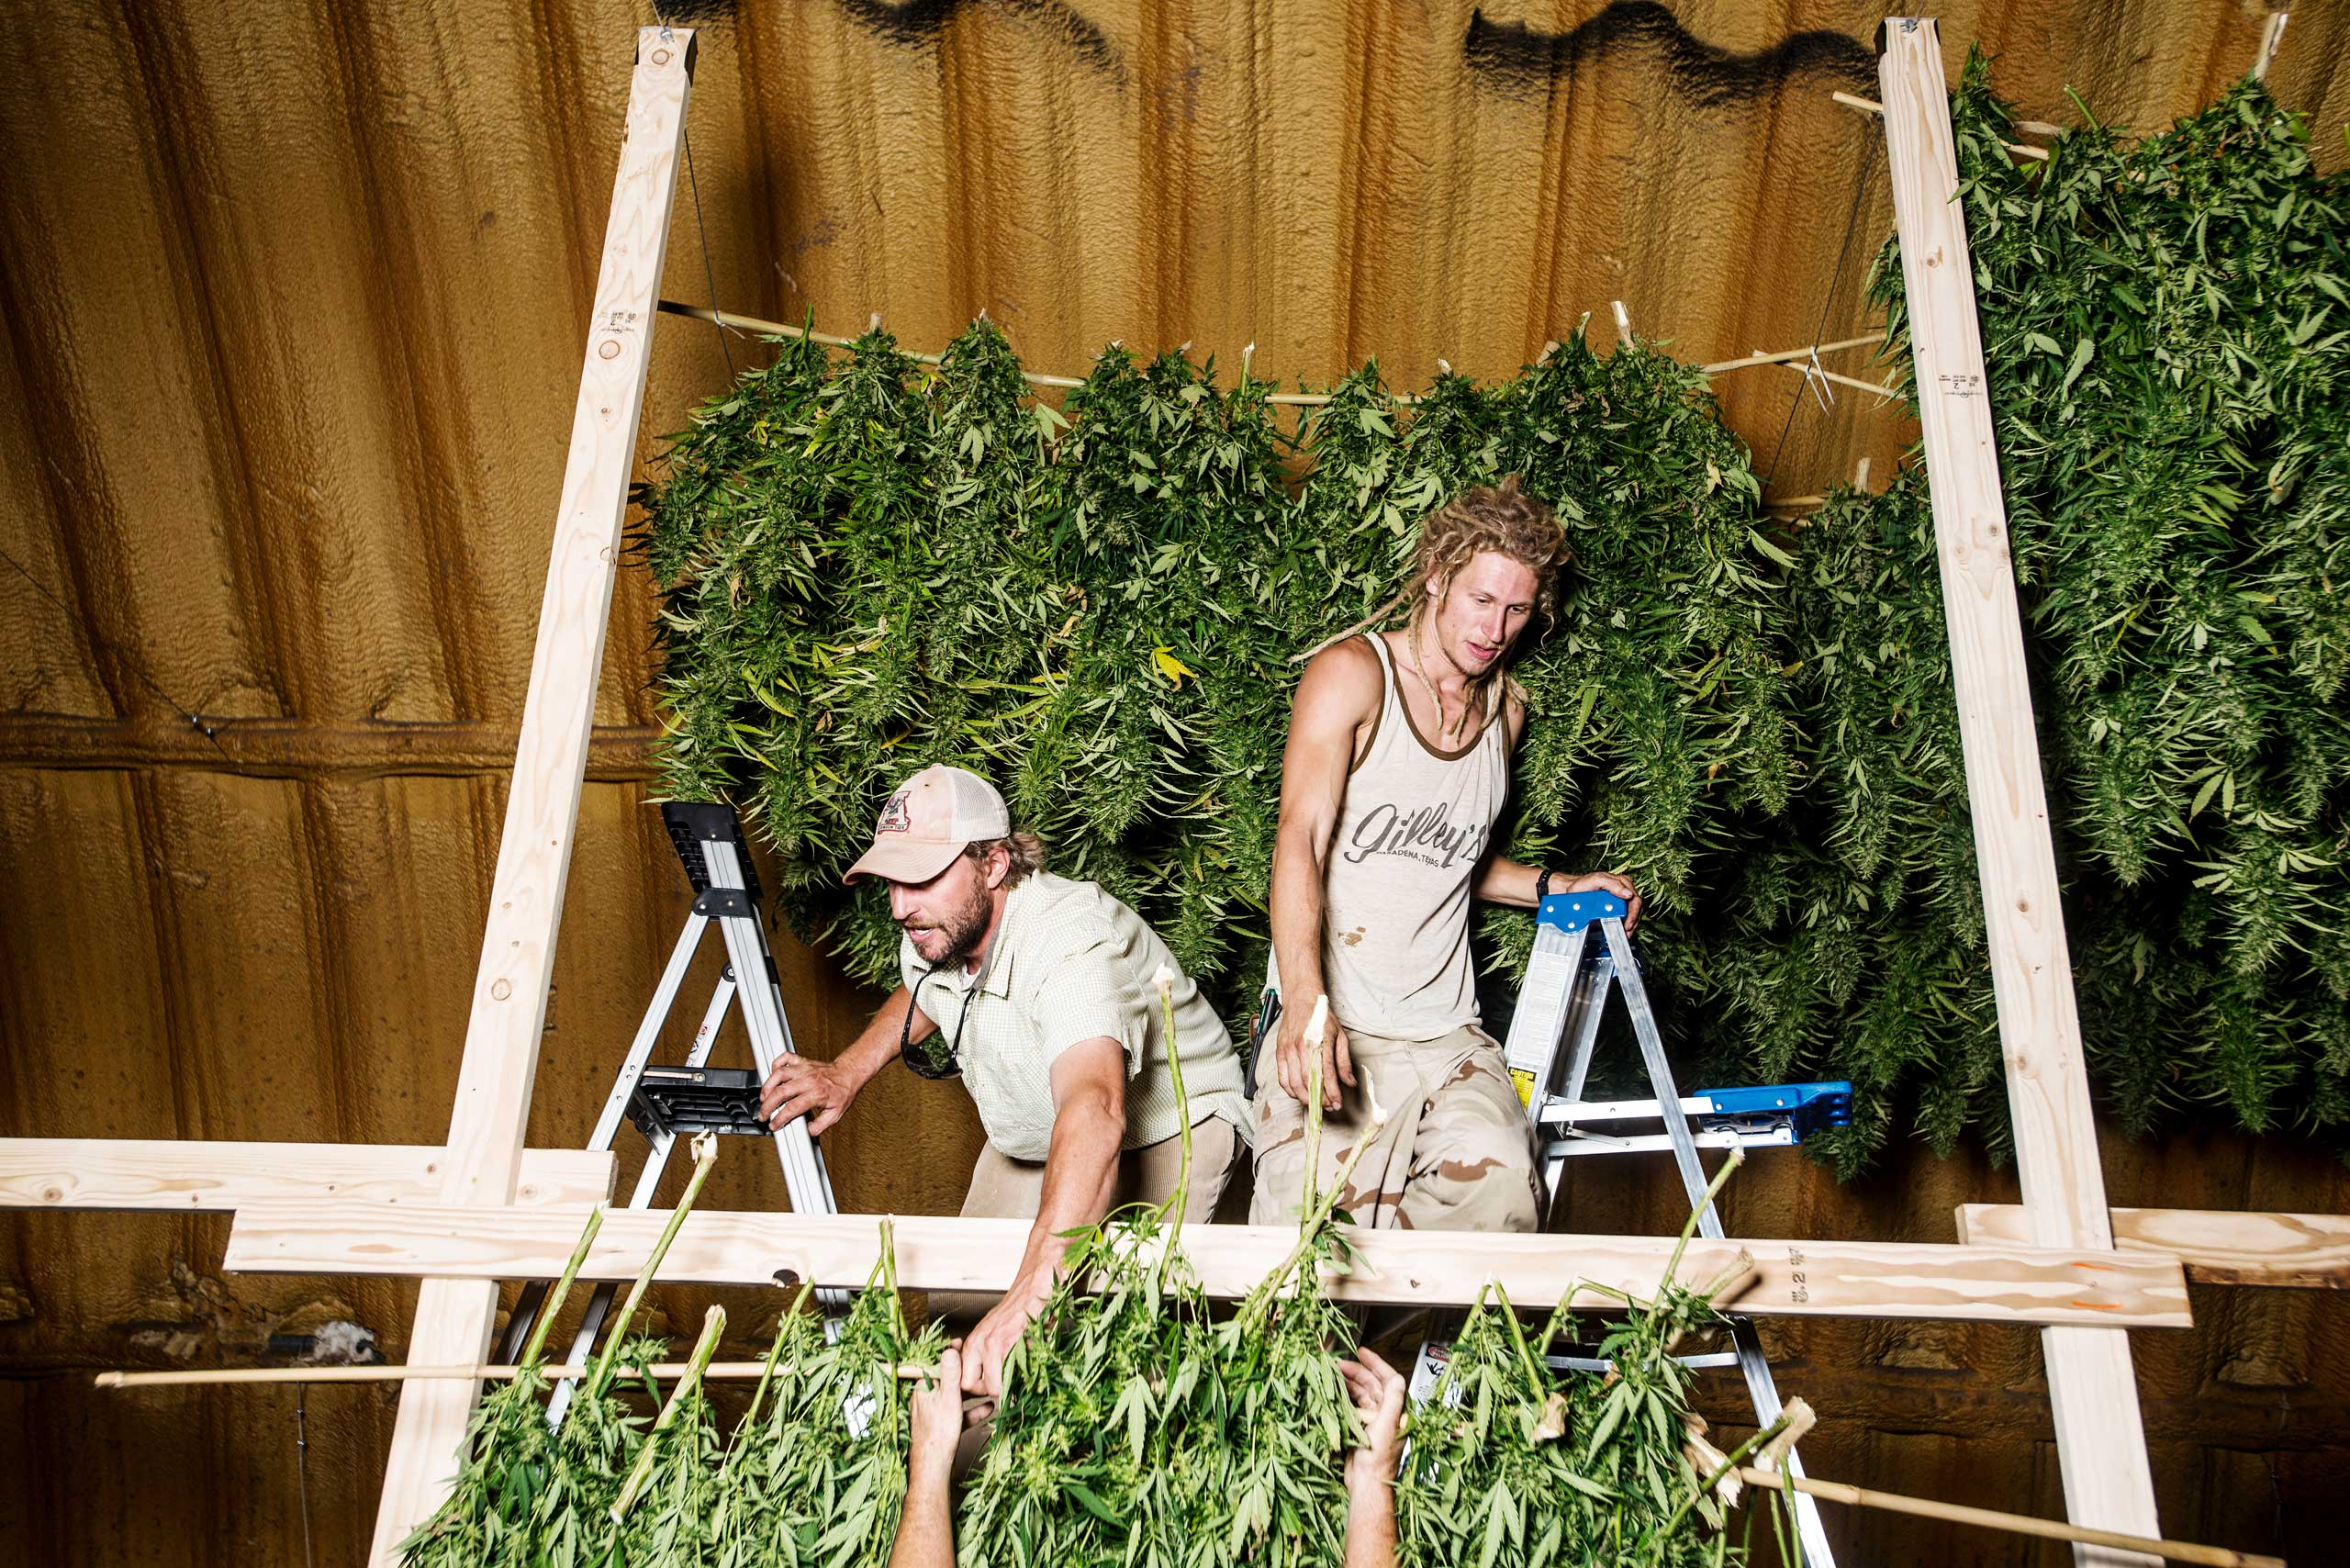 Penn Mattison, left, and Zachary Sobol, right, hang rows of Charlotte's Web to dry after being harvested from a farm near Wray, Colo. on Sept. 22, 2014.